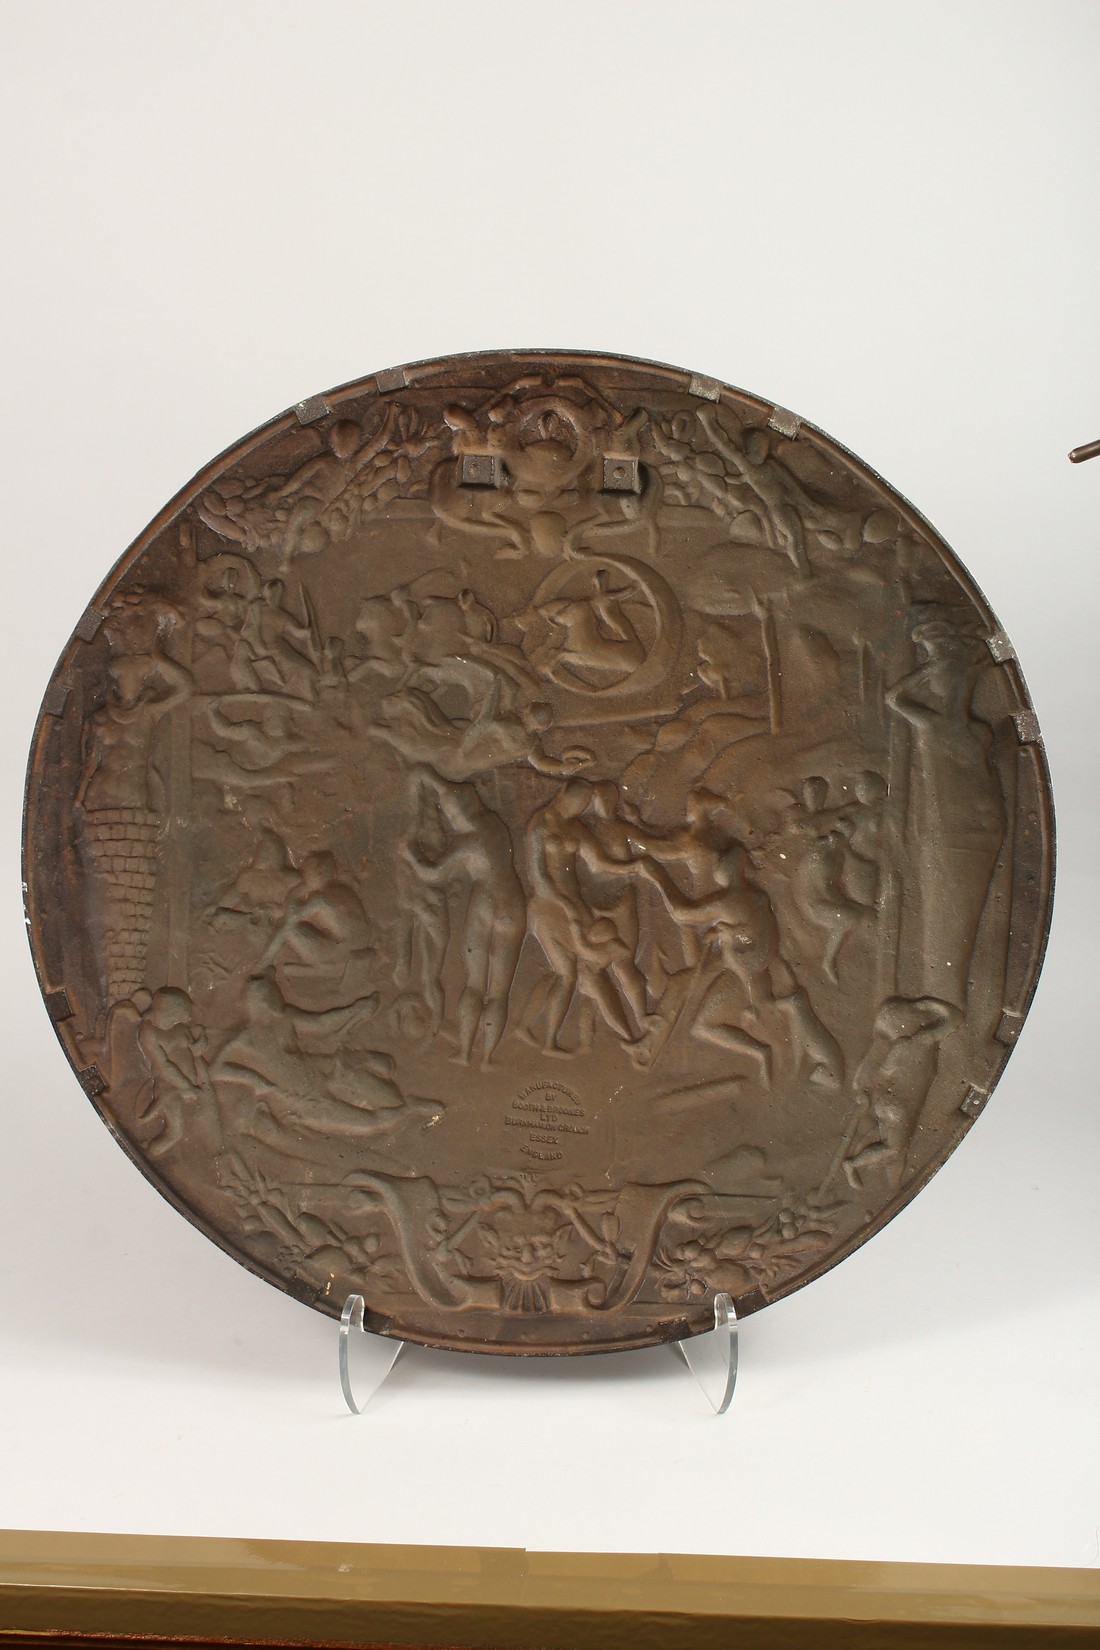 AN IMPRESSIVE CLASSICAL STYLE CAST IRON CIRCULAR PLAQUE, decorated with Greek mythological figures - Image 7 of 8